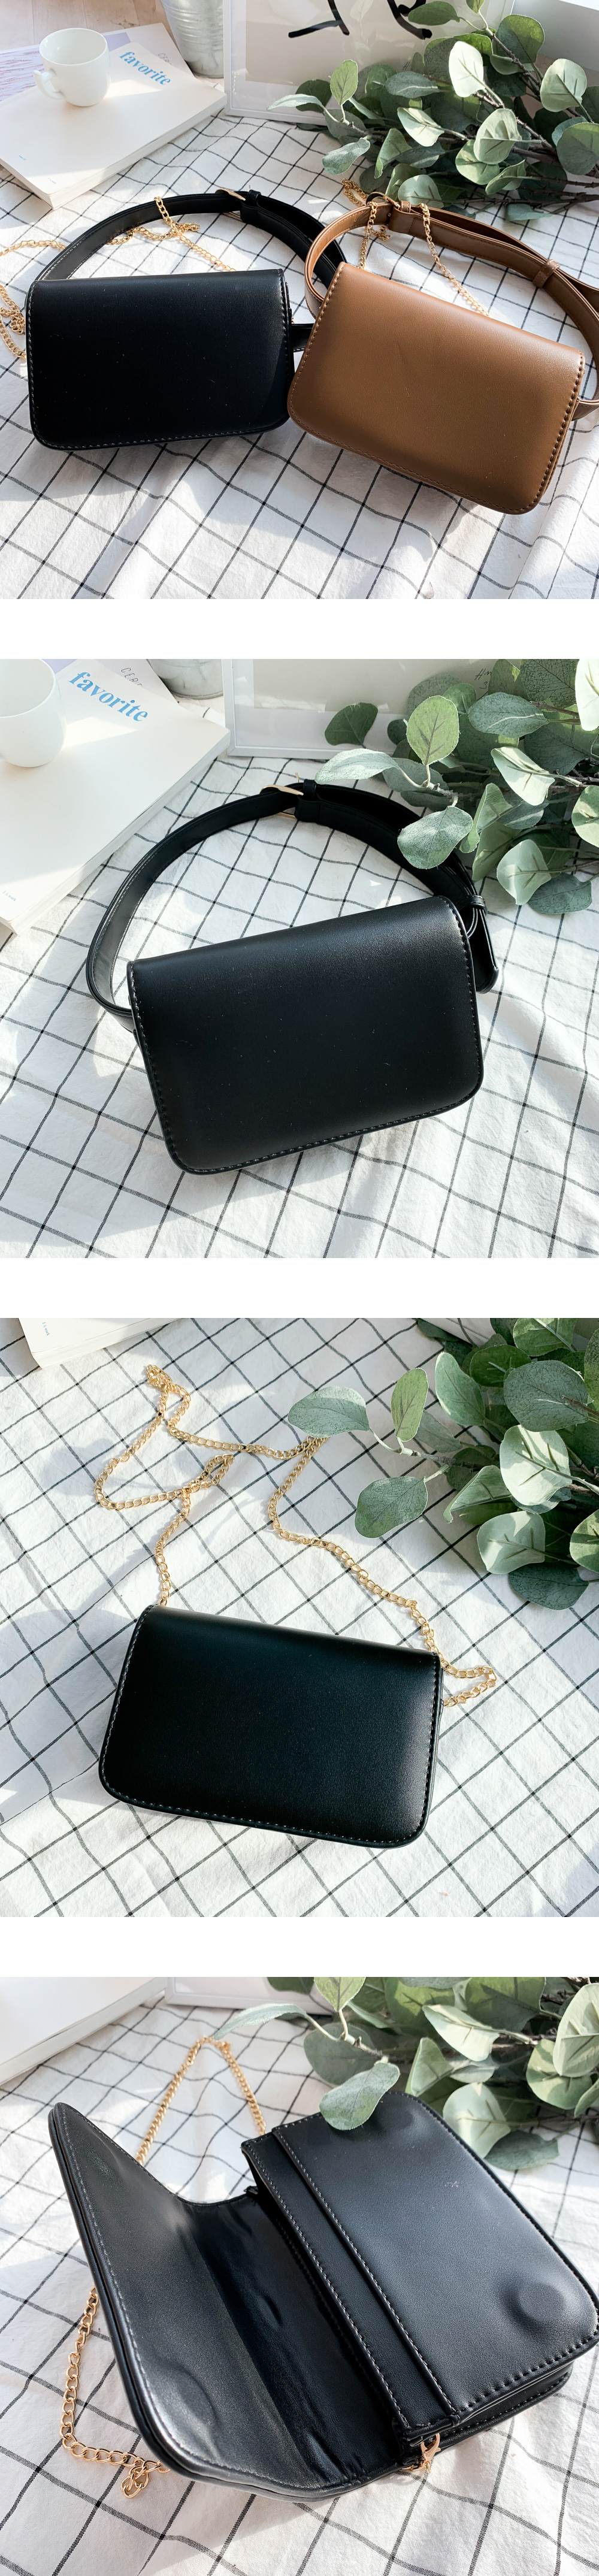 055 Mini Two-Way Shoulder Bag